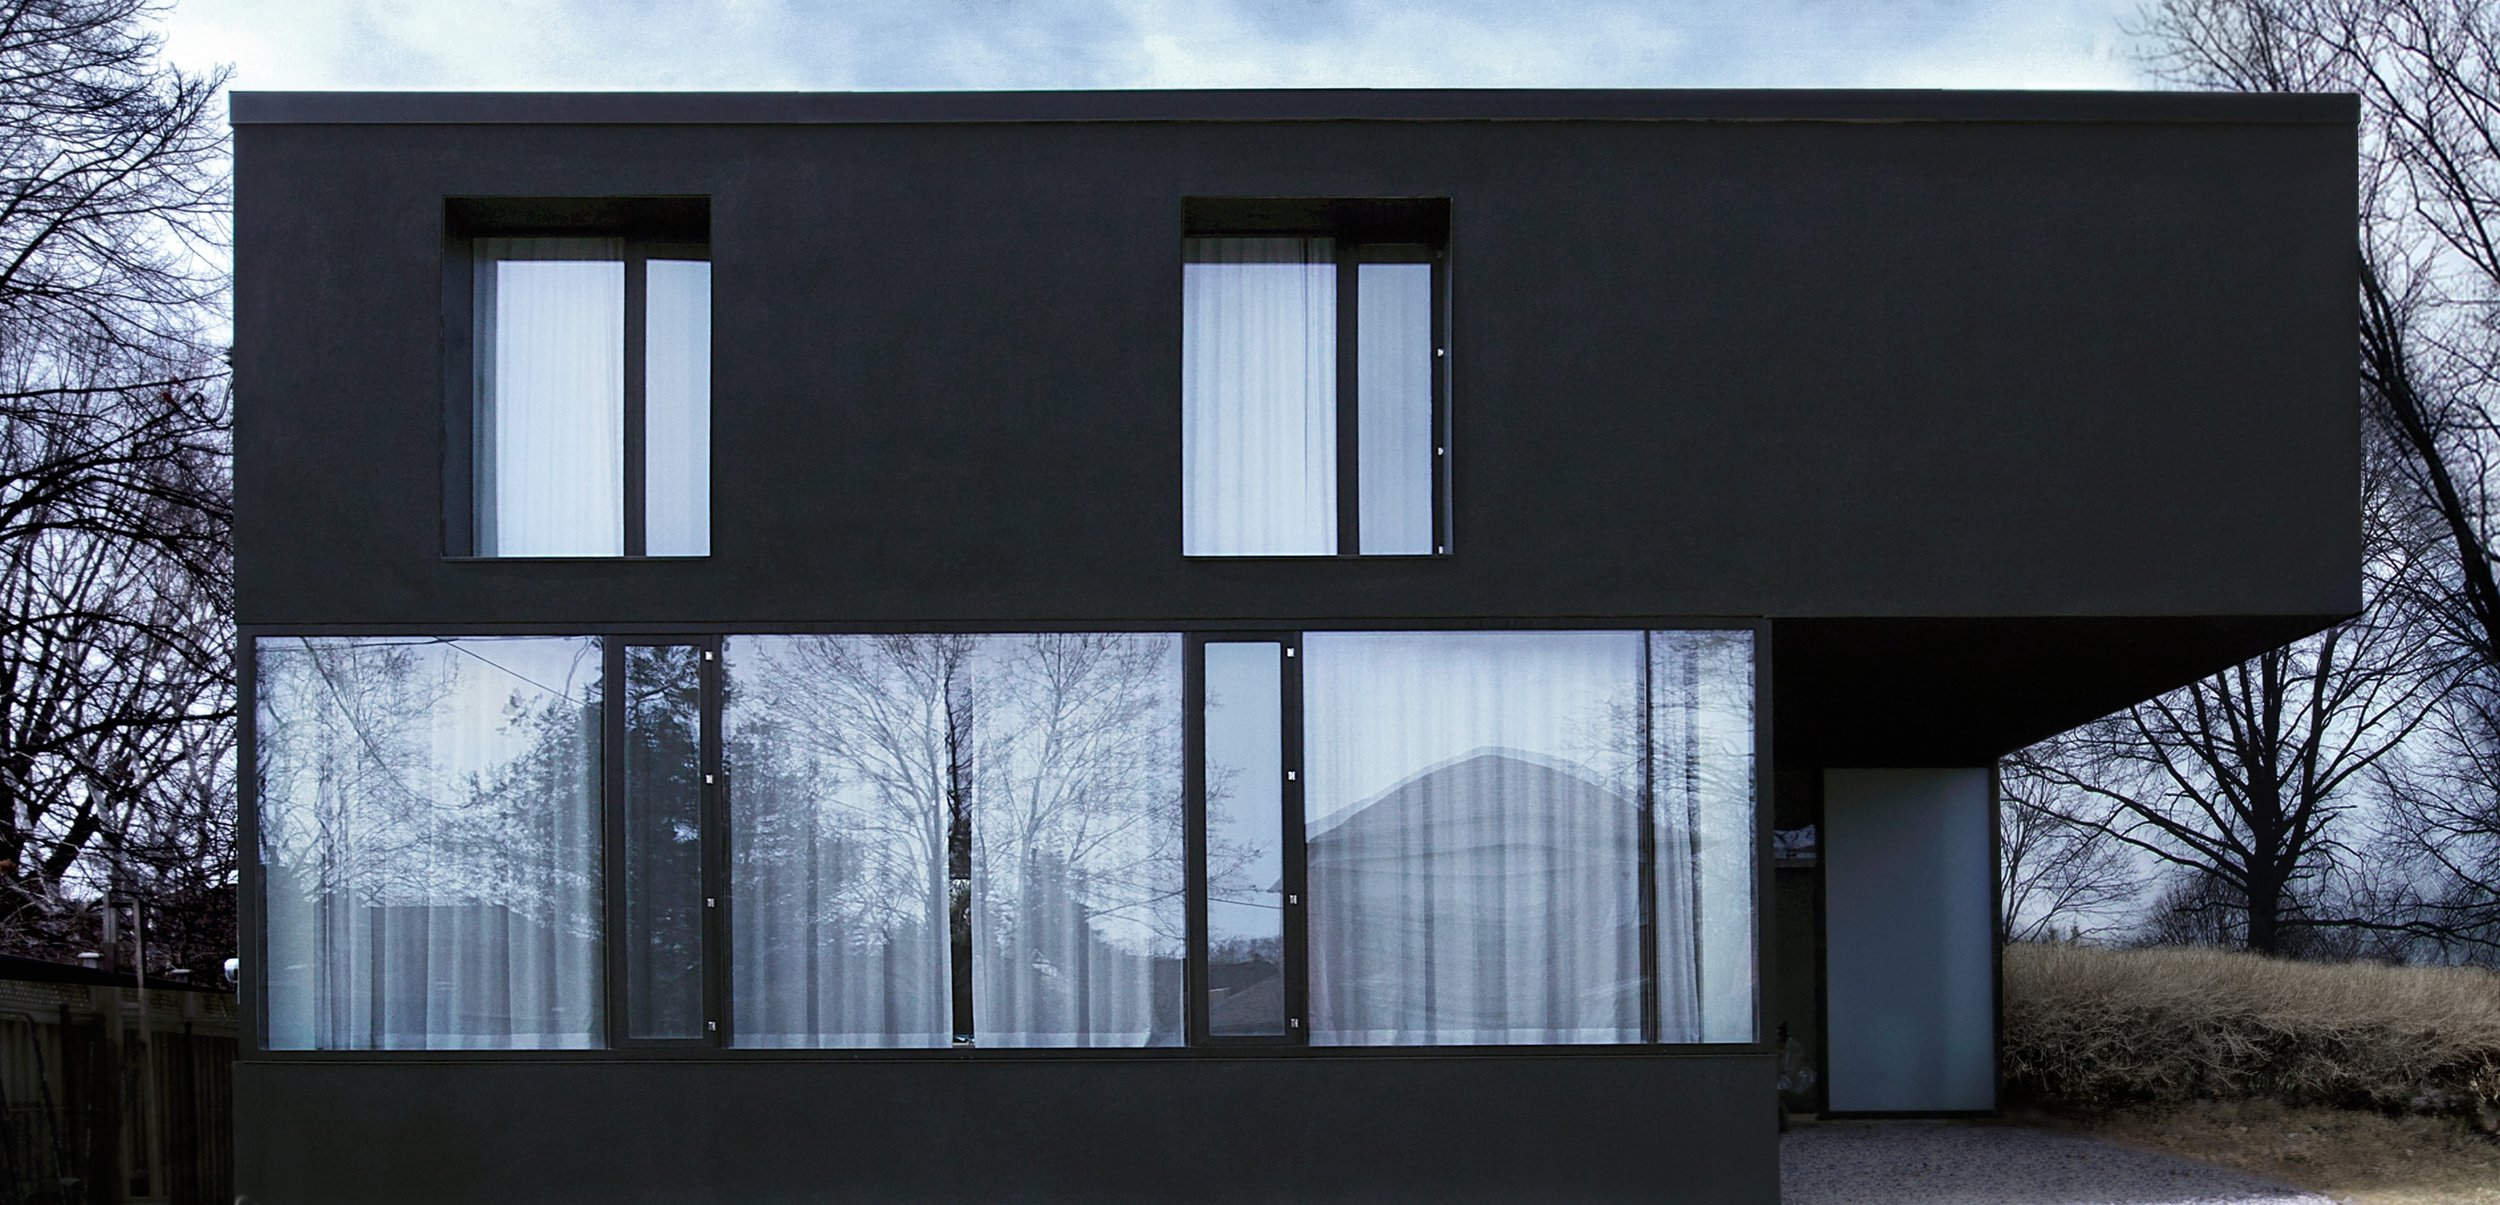 House 60 - front daytime windows closed facade elevation